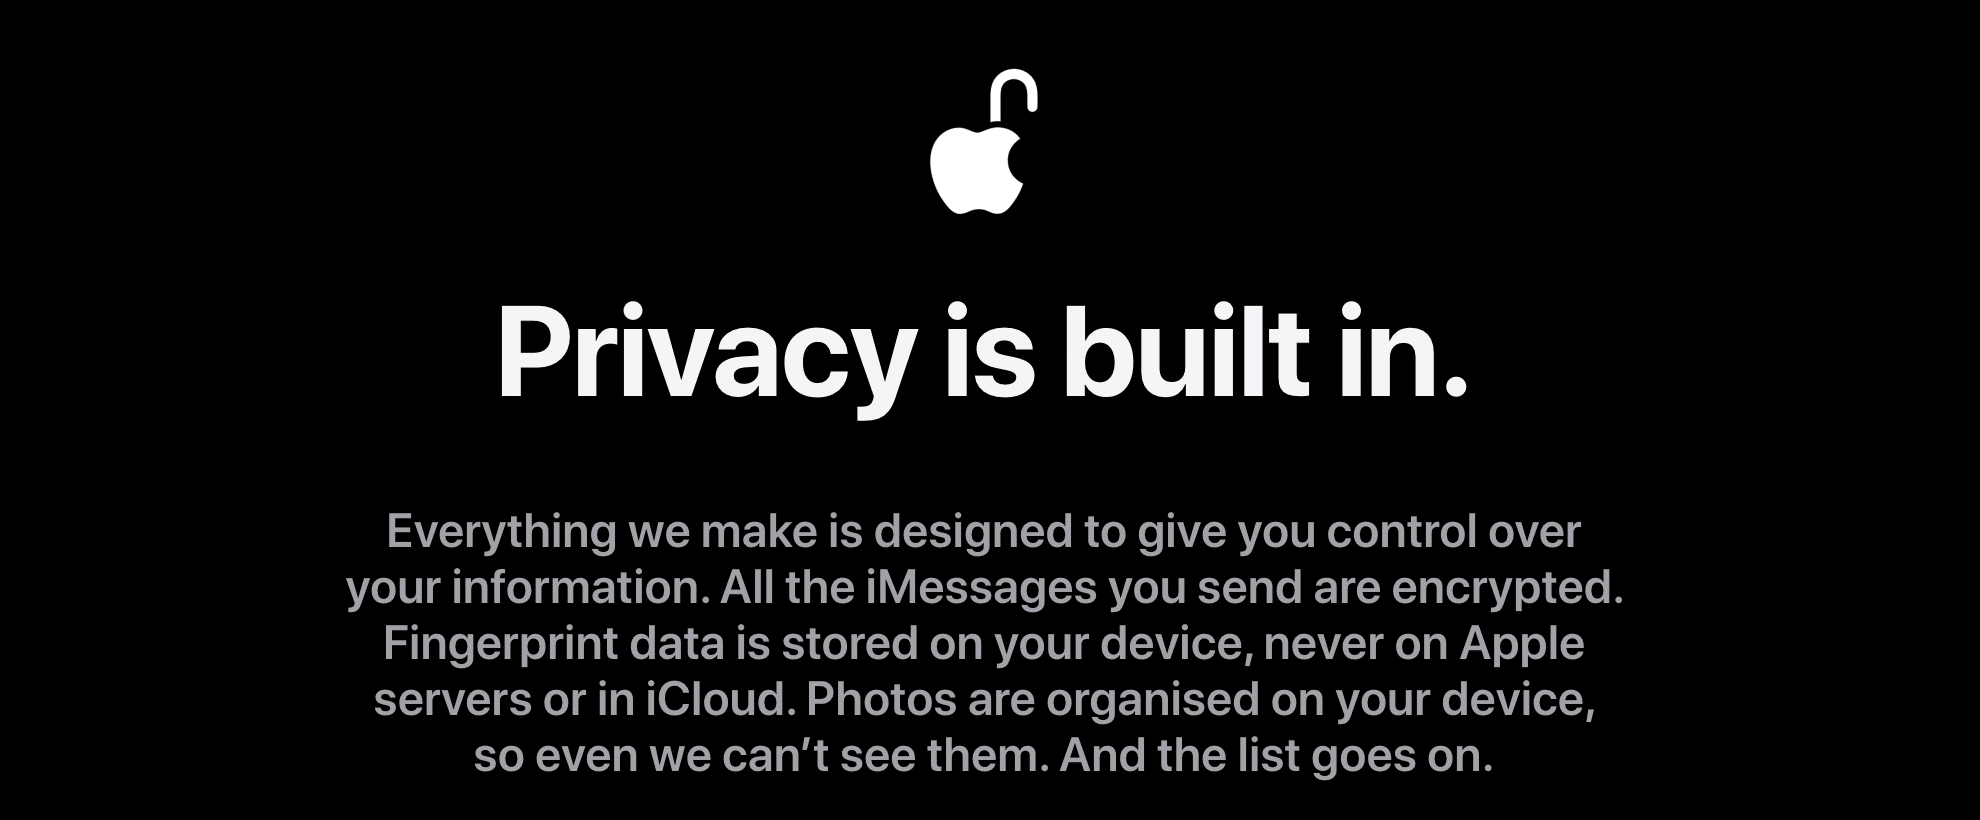 Apple's Privacy and Security